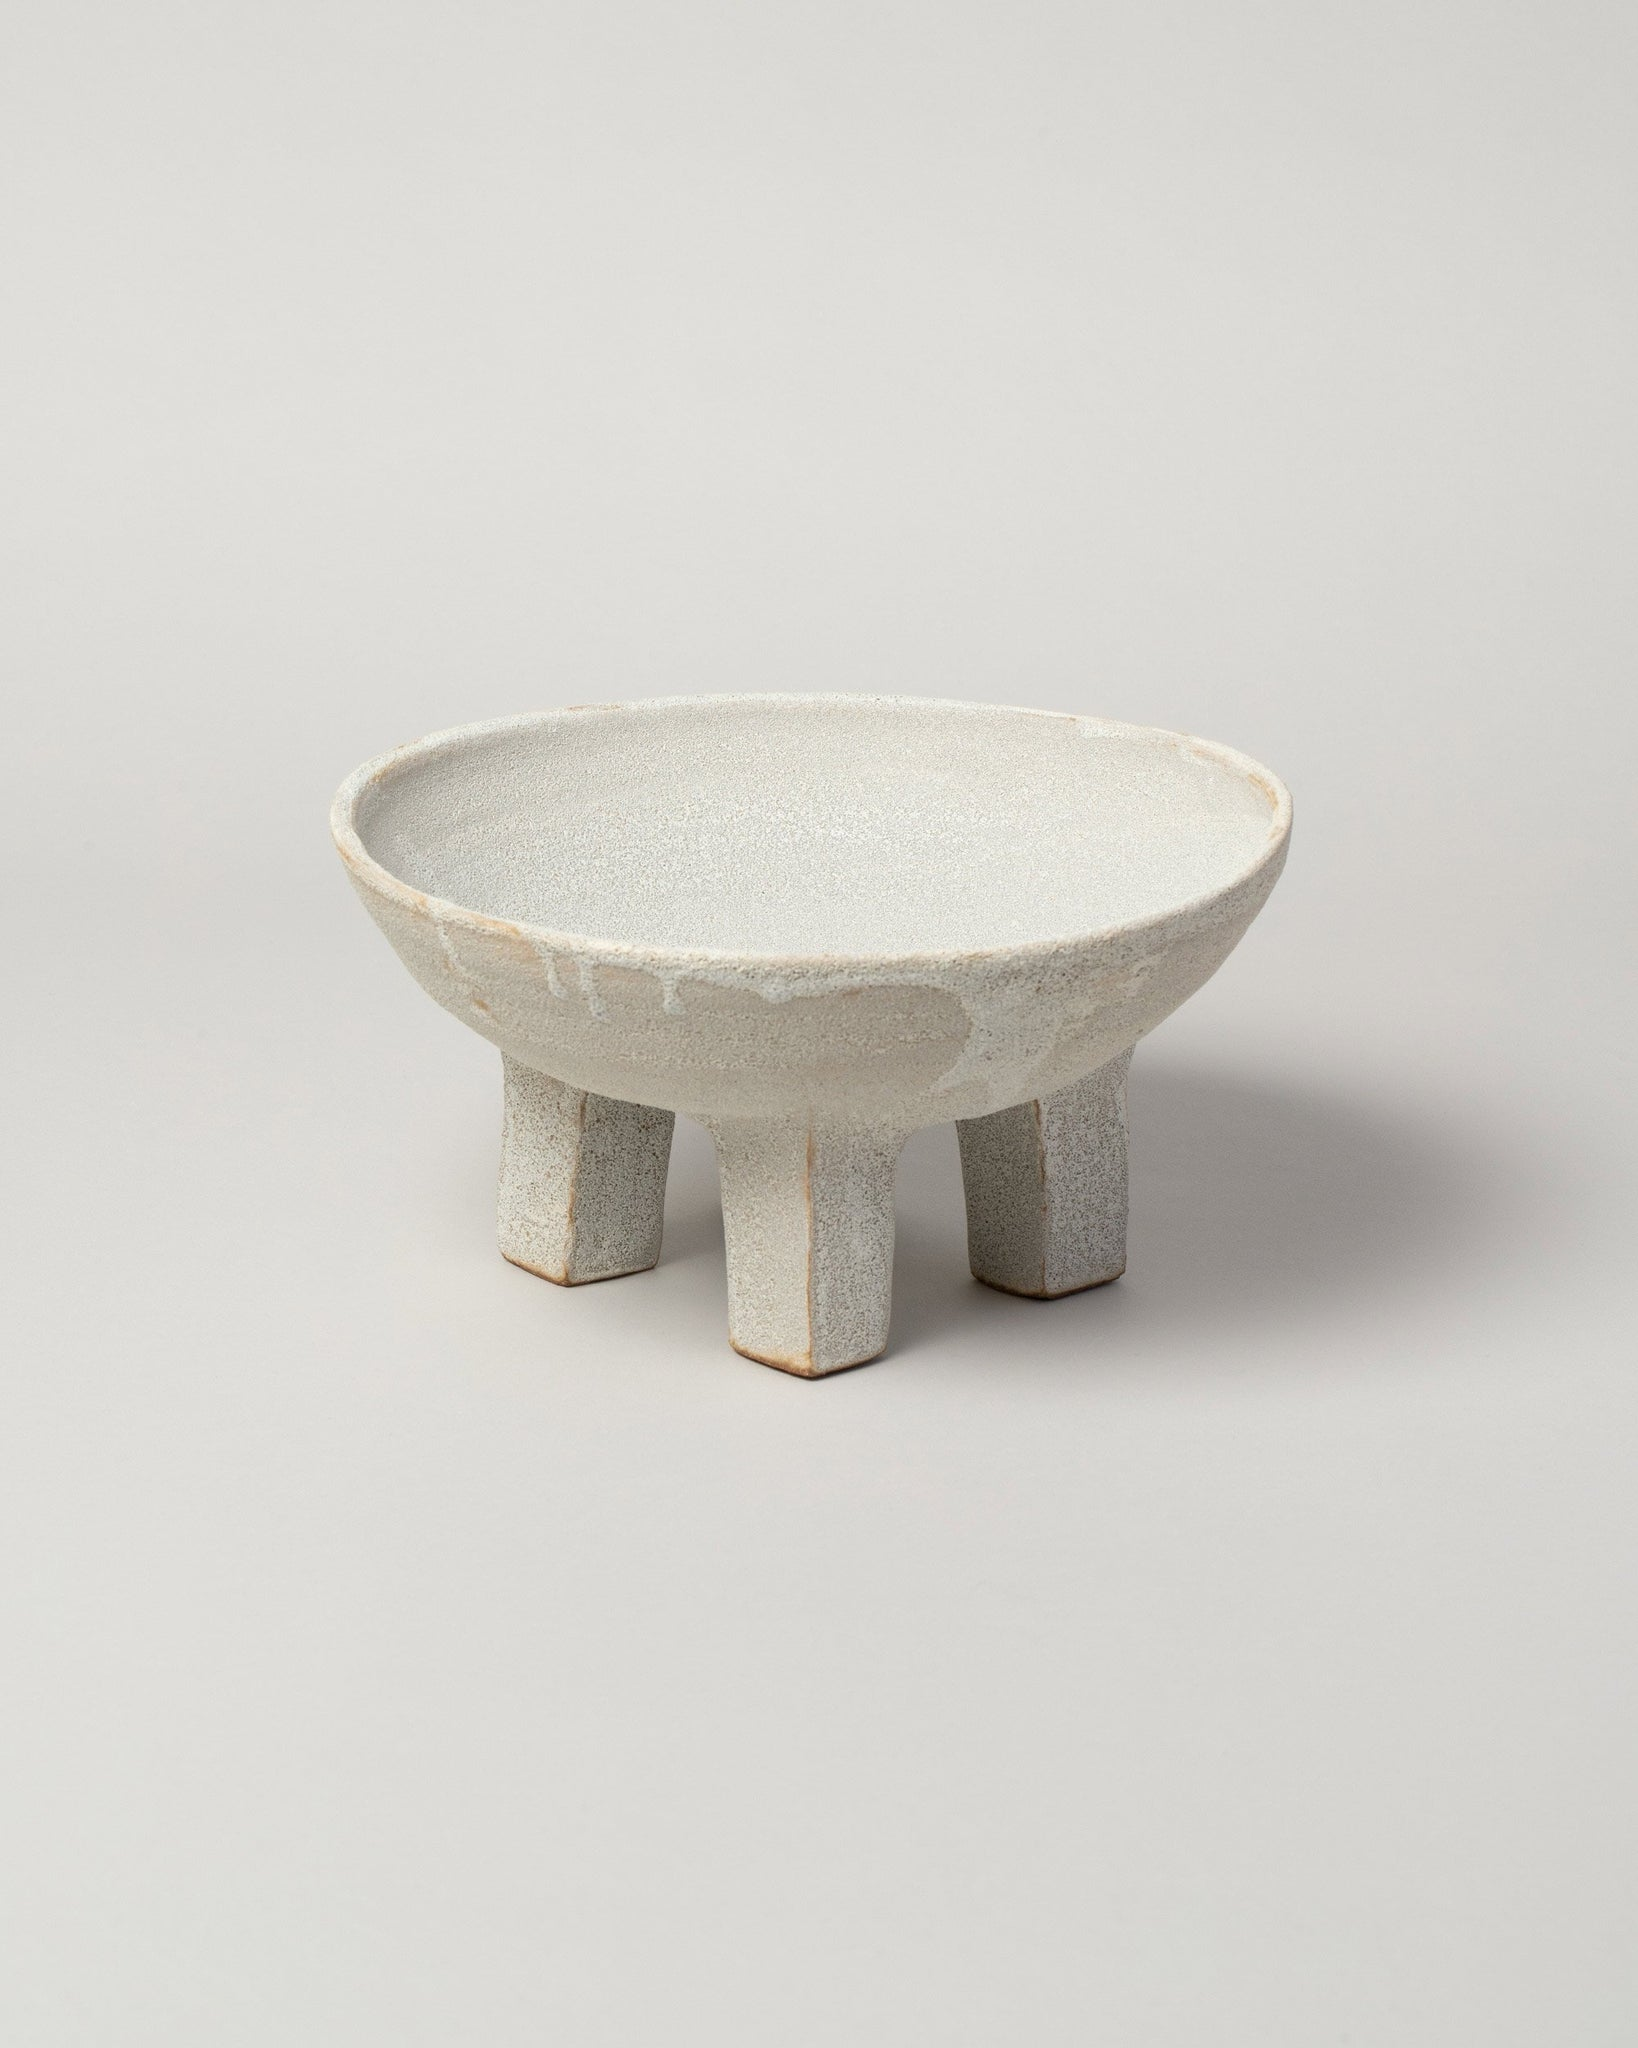 Nur Ceramics Volcanic Ritual Bowl on light color background.